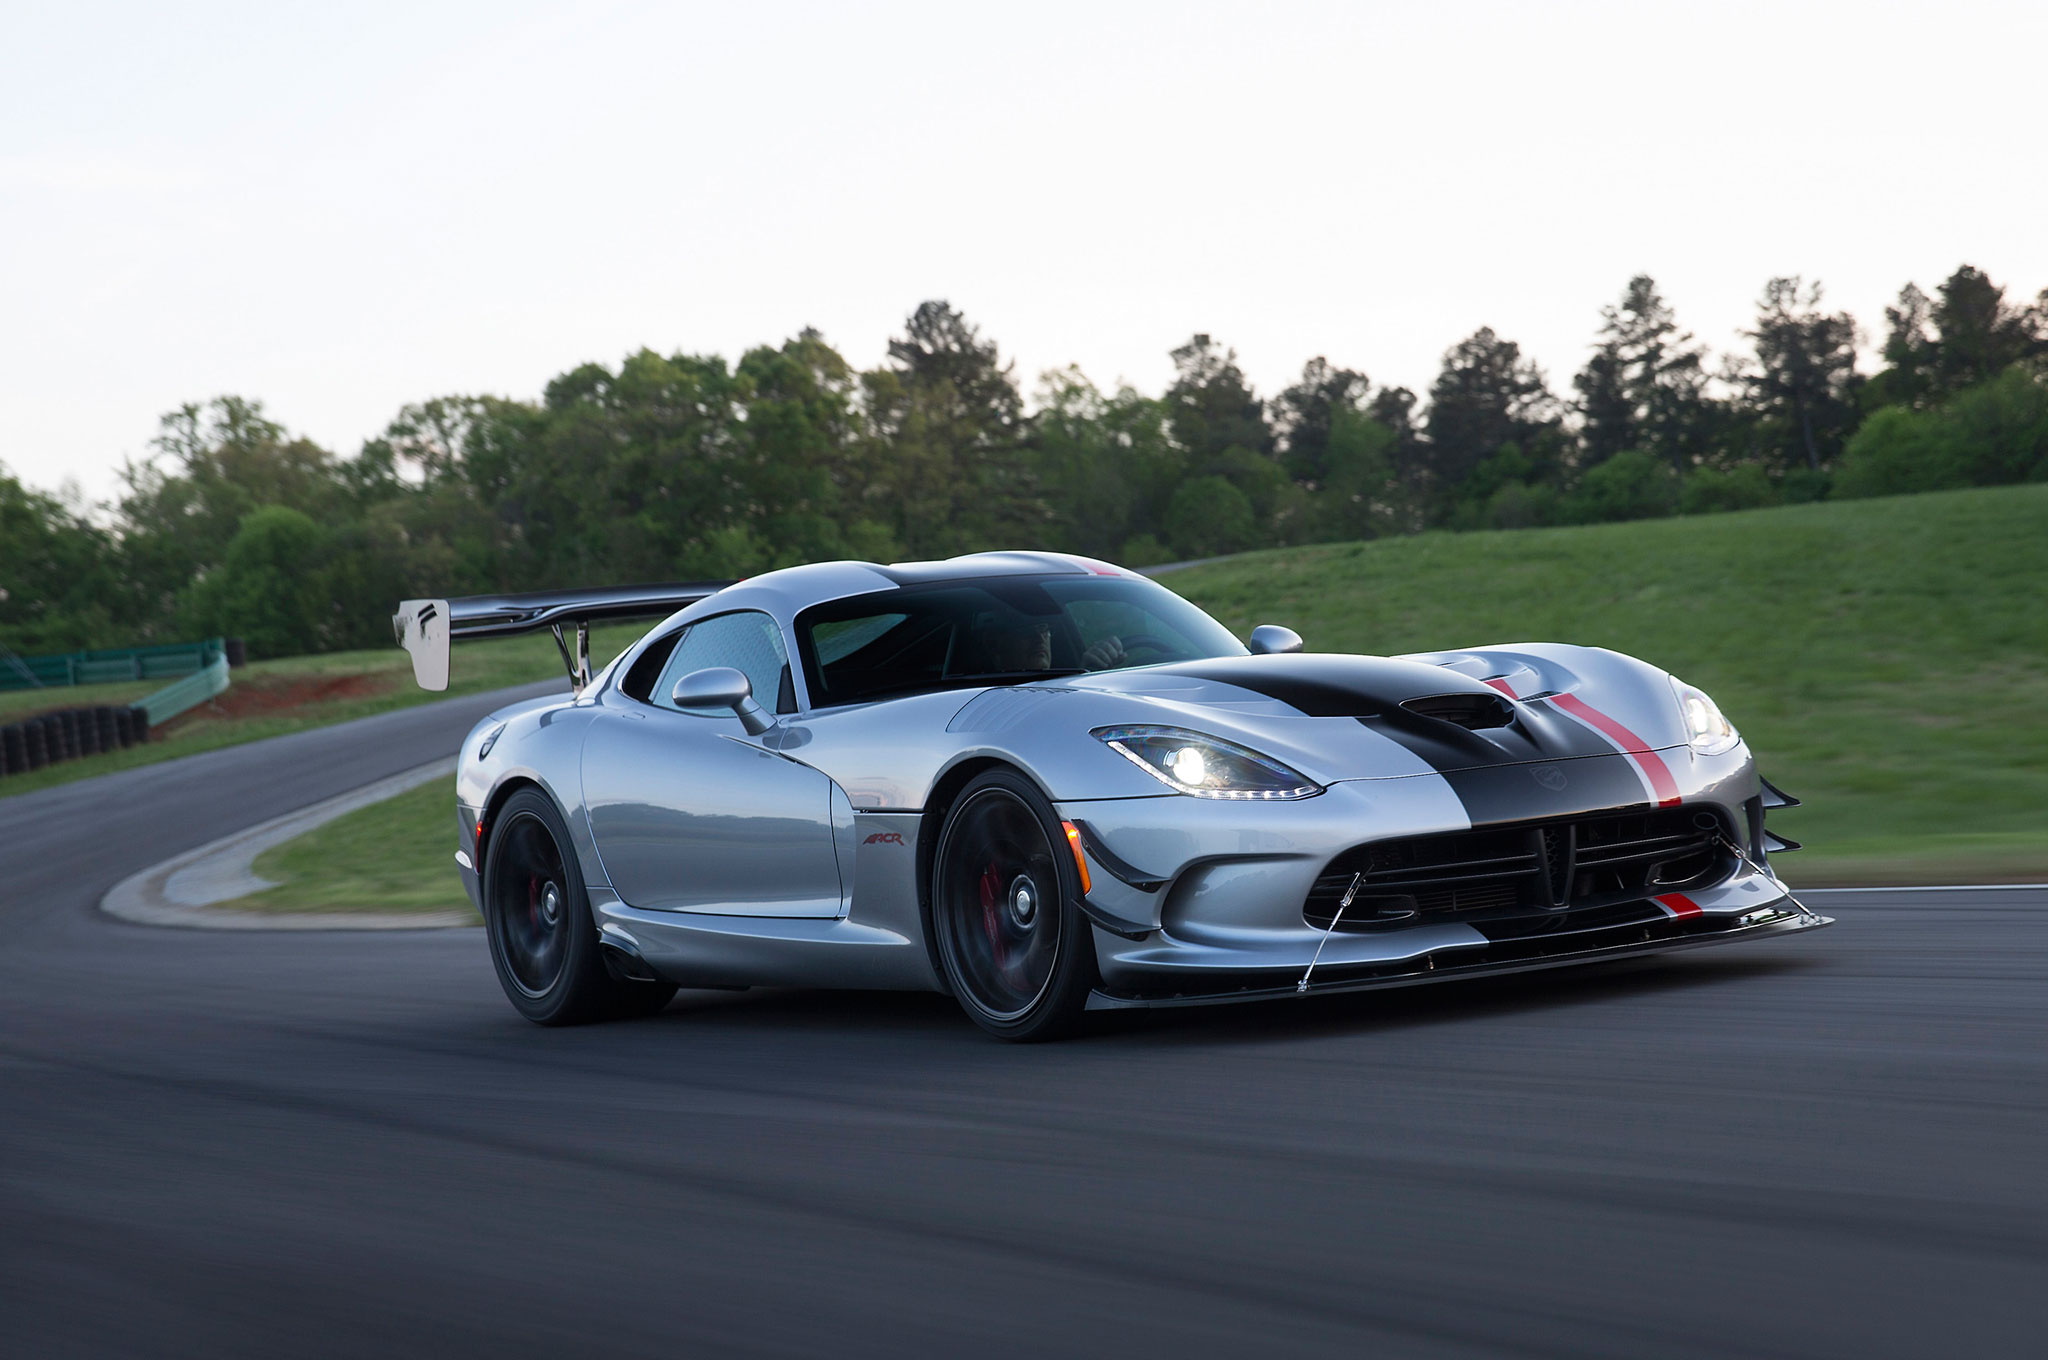 2016 Dodge Viper ACR First Drive - Motor Trend